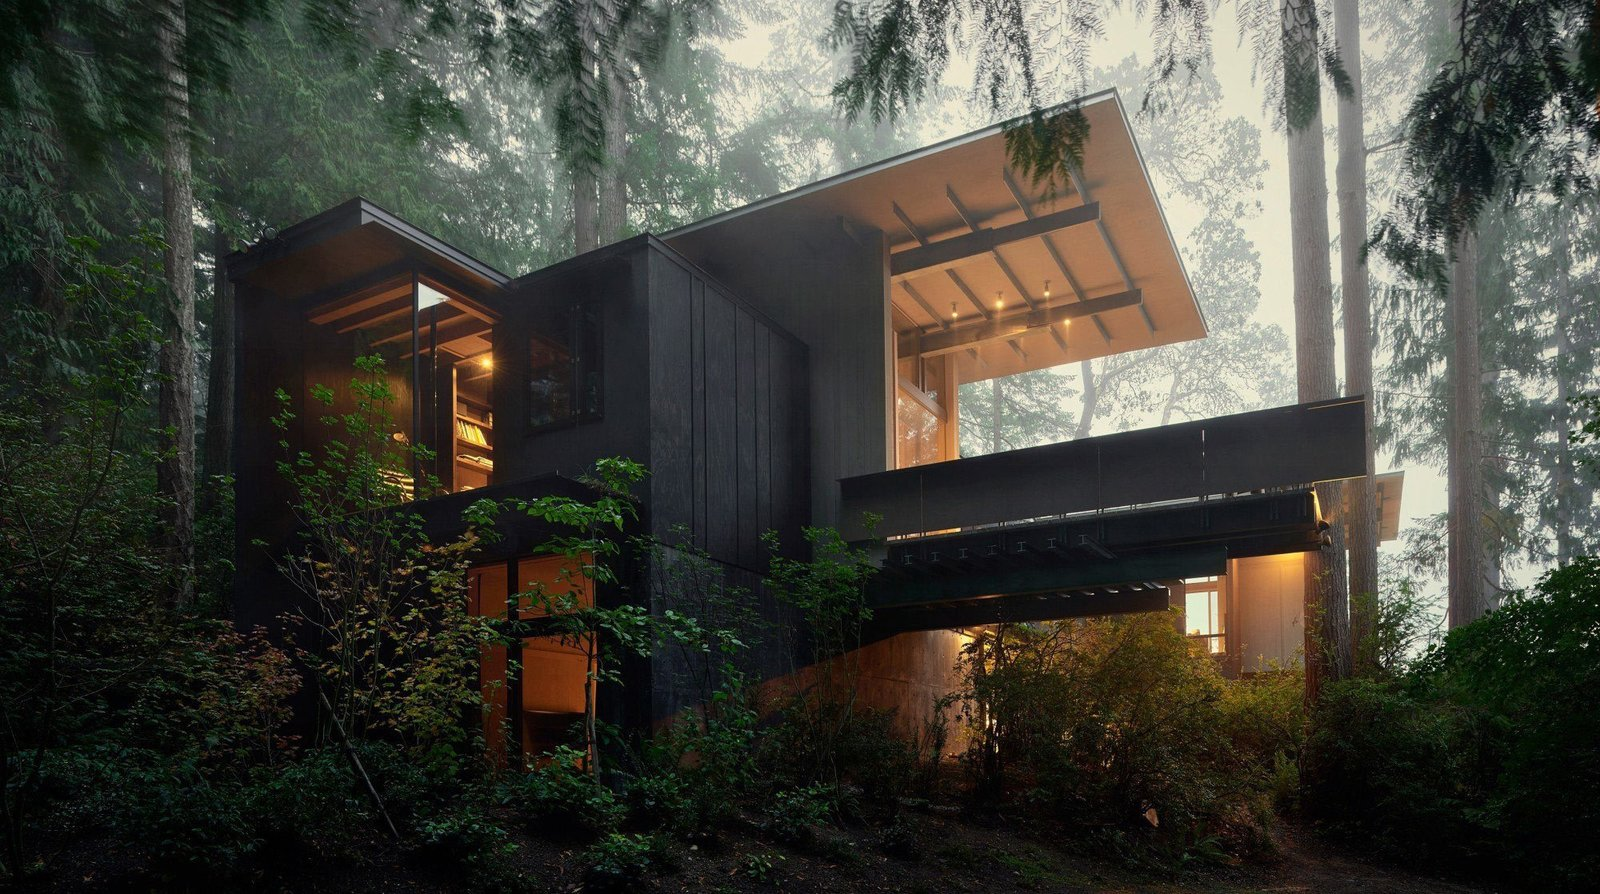 Exterior and Cabin Building Type Jim Olson's #cabin at Longbranch Washington #olsonkundig  Best Photos from Small and Quiet